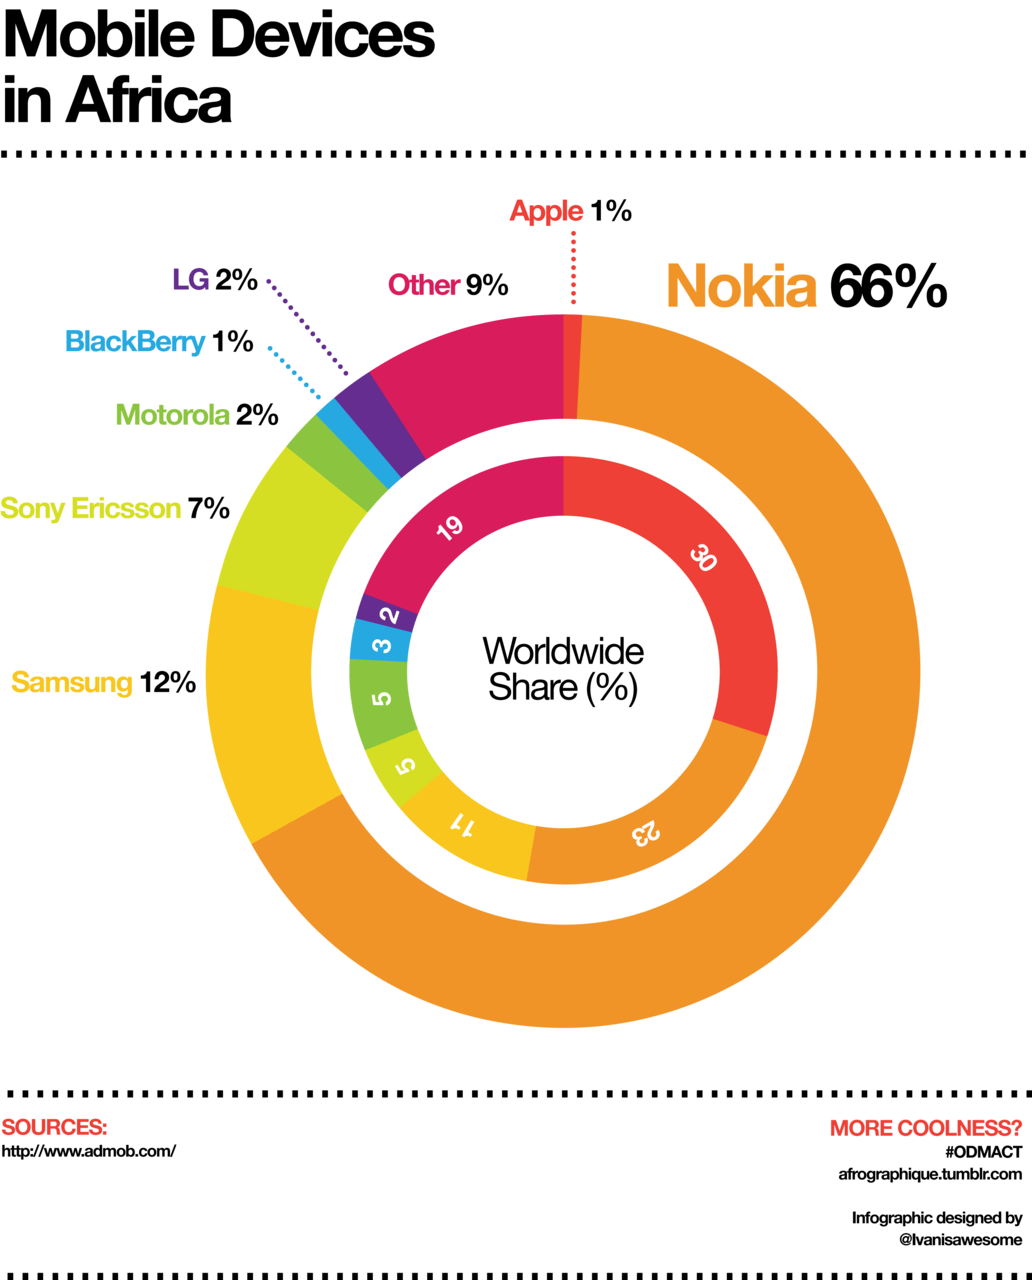 An infographic depicting mobile devices by brand and percentage used on the African continent. Data by Admob, 2010.